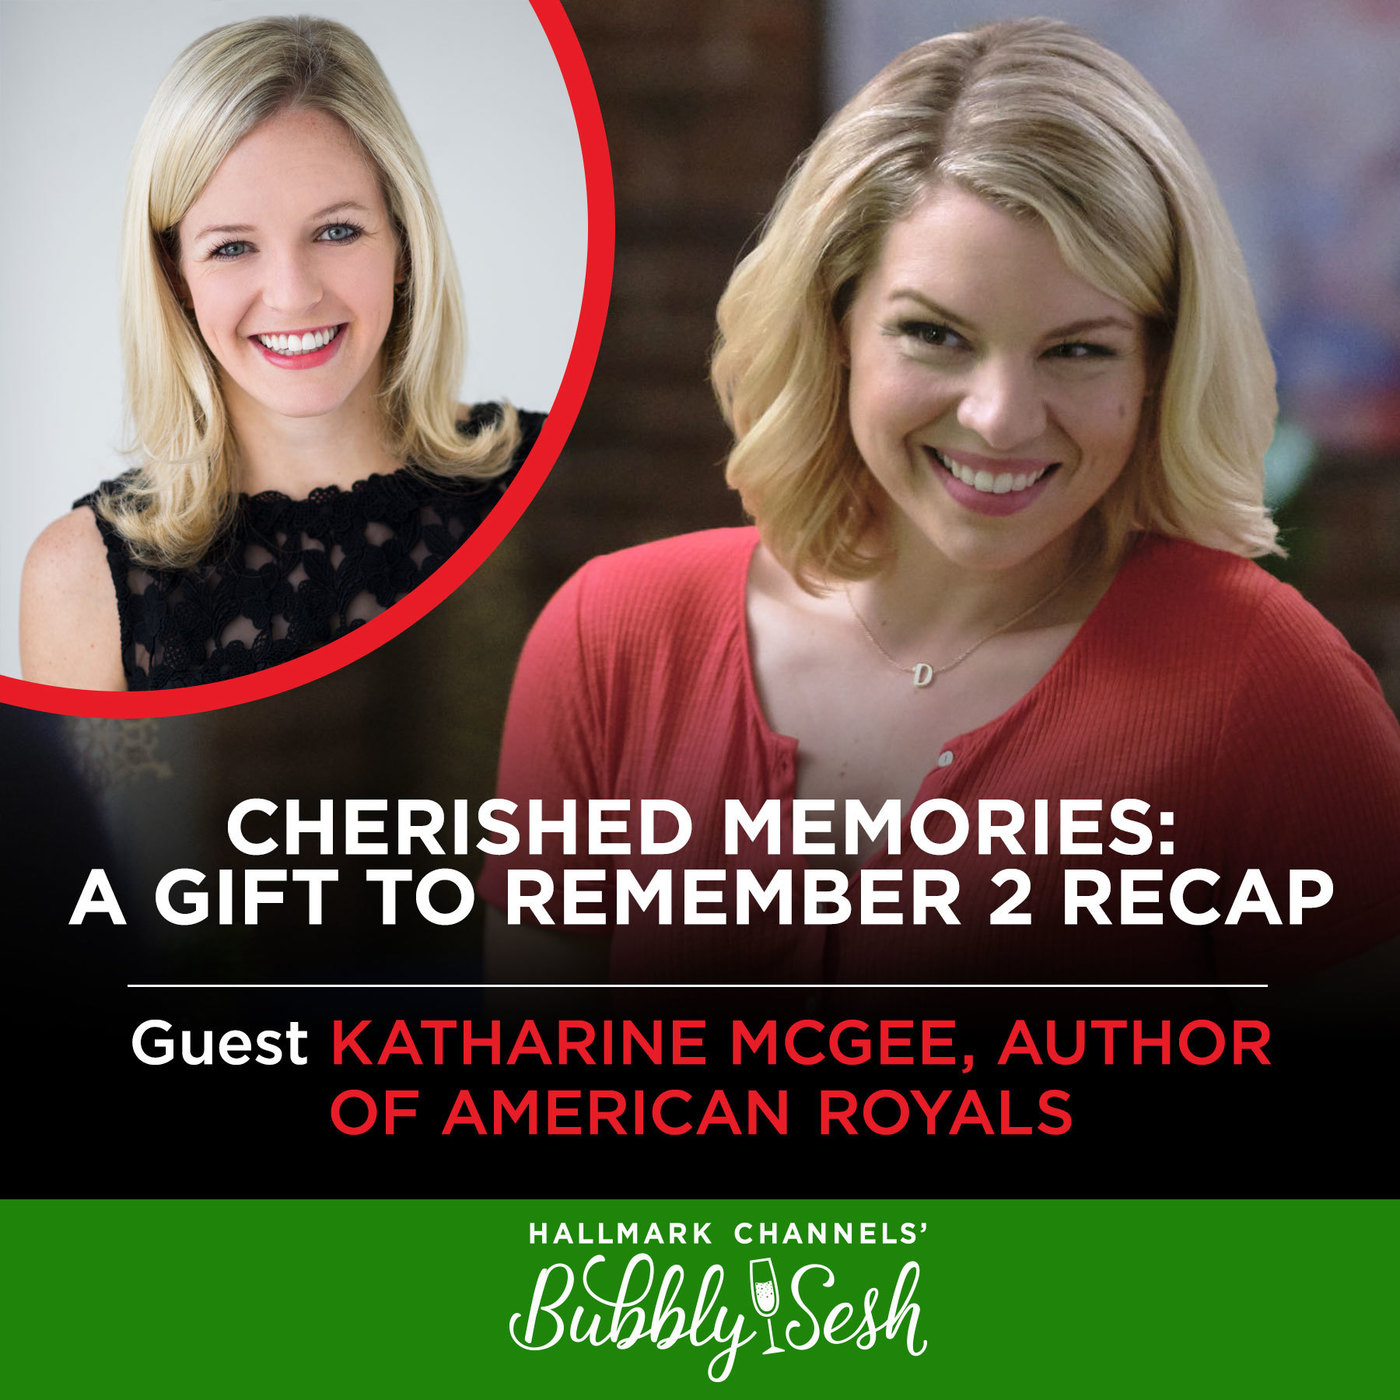 Cherished Memories: A Gift to Remember 2 Recap with Katharine McGee